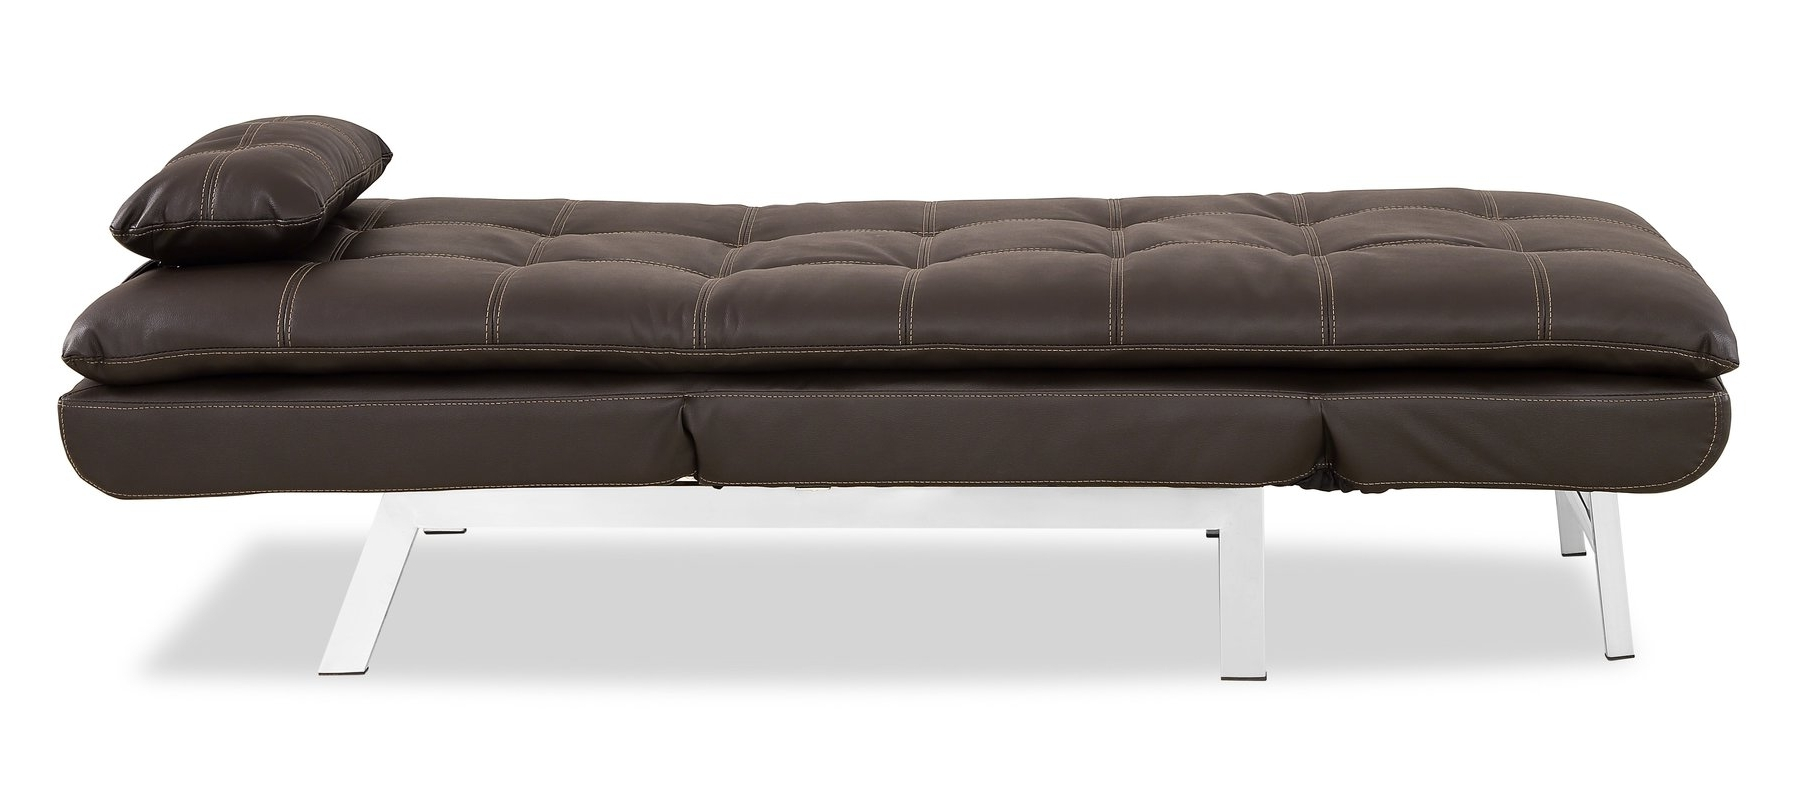 Wayfair Intended For Current Convertible Chaise Lounges (View 14 of 15)